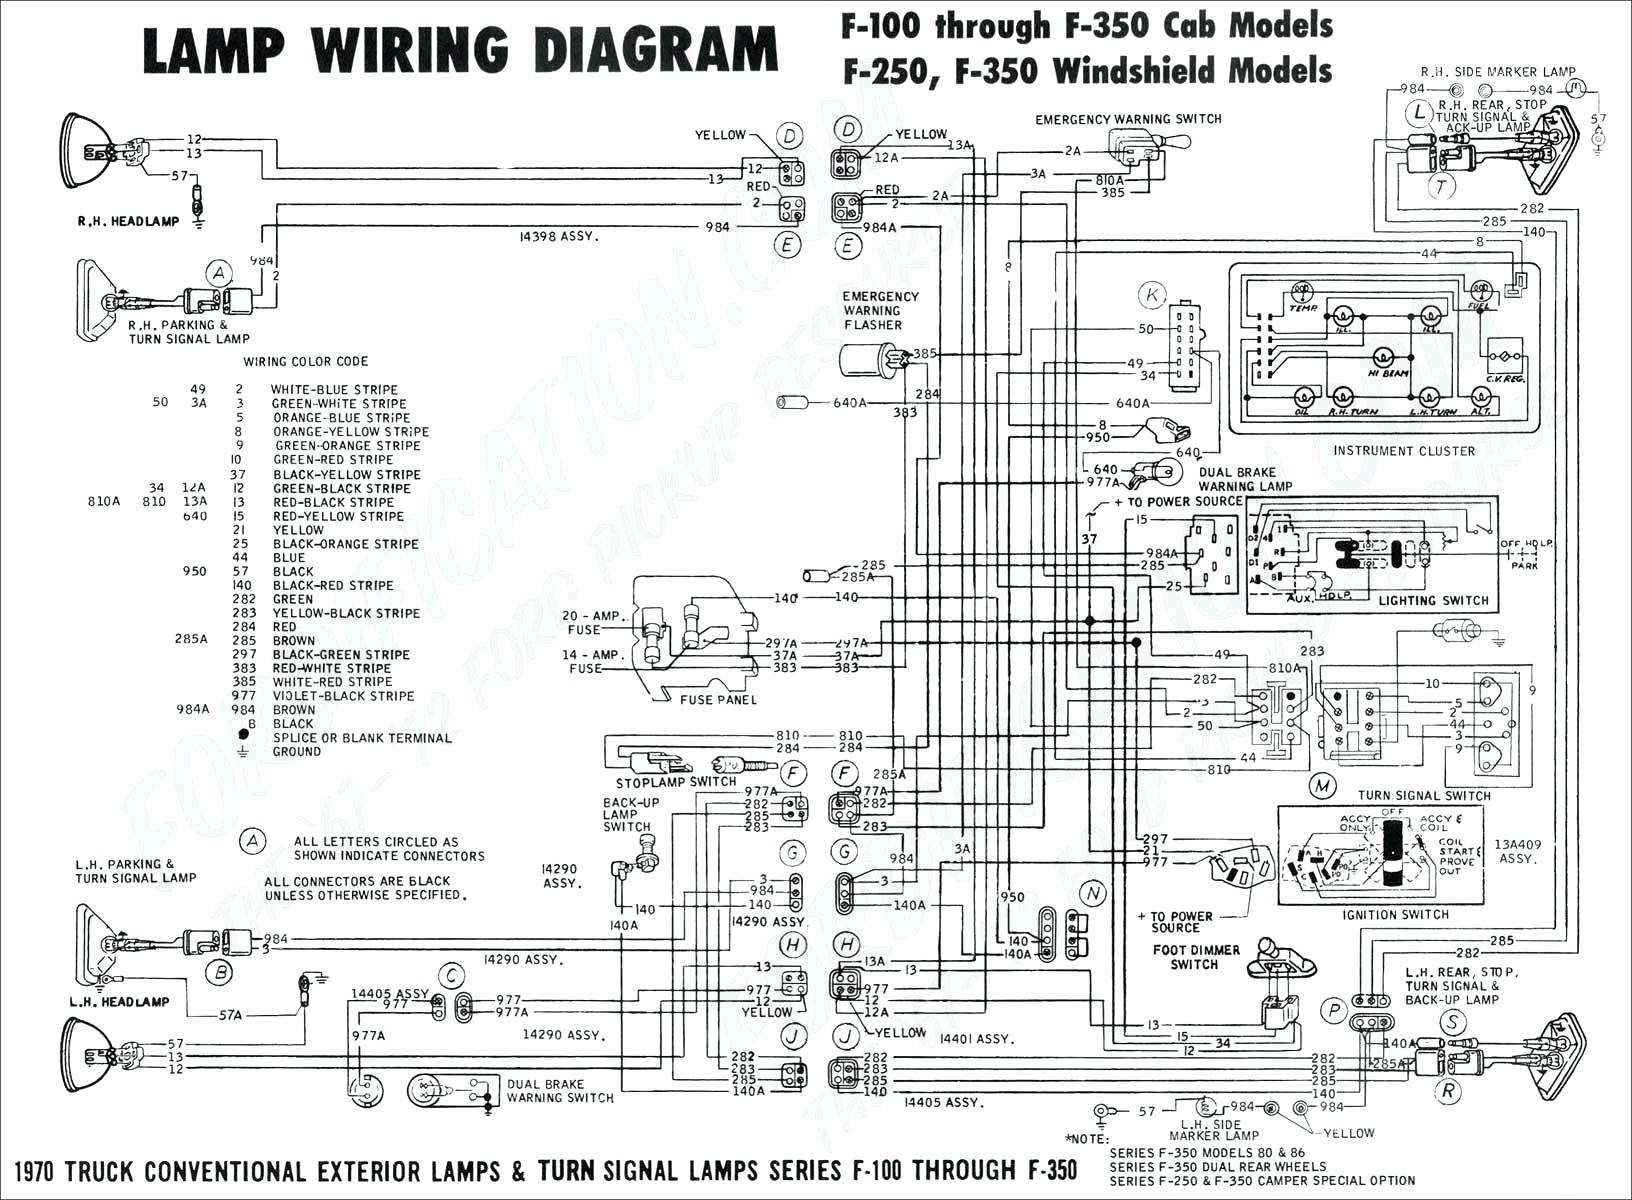 2017 ford f550 pto wiring diagram Download-2017 Ford F550 Pto Wiring Diagram Recent 2003 F250 Wiring Diagram Wire Center • – Wiring Diagram Collection 15-d